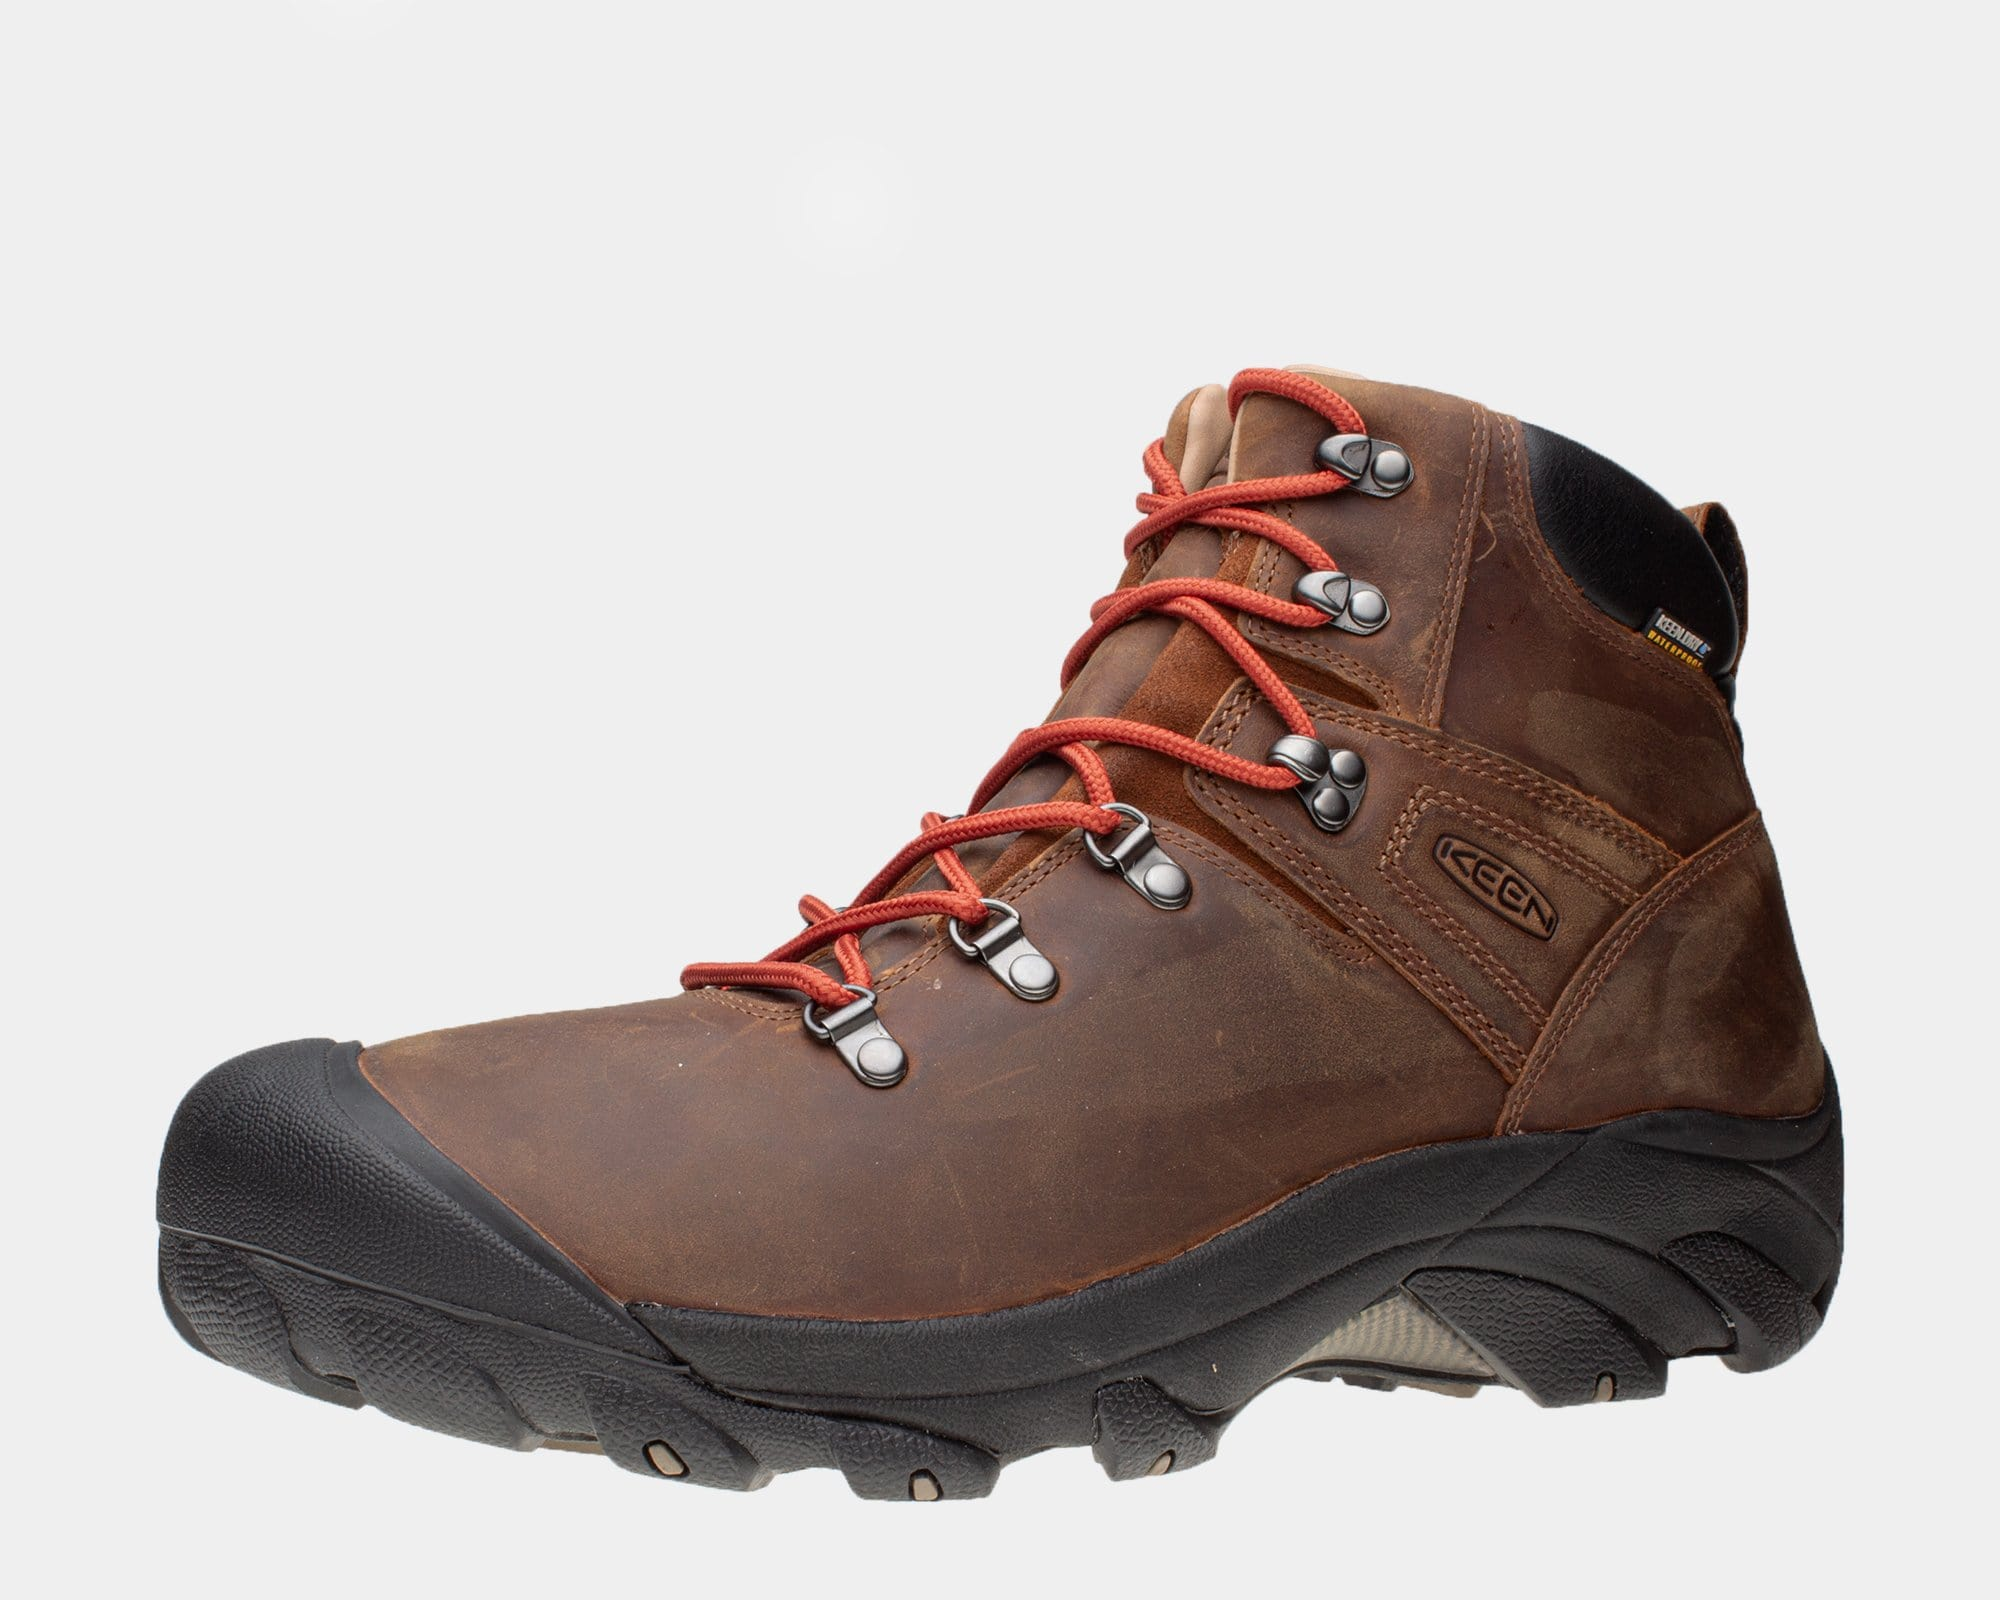 KEEN Pyrenees Big and Tall Hiking Boots